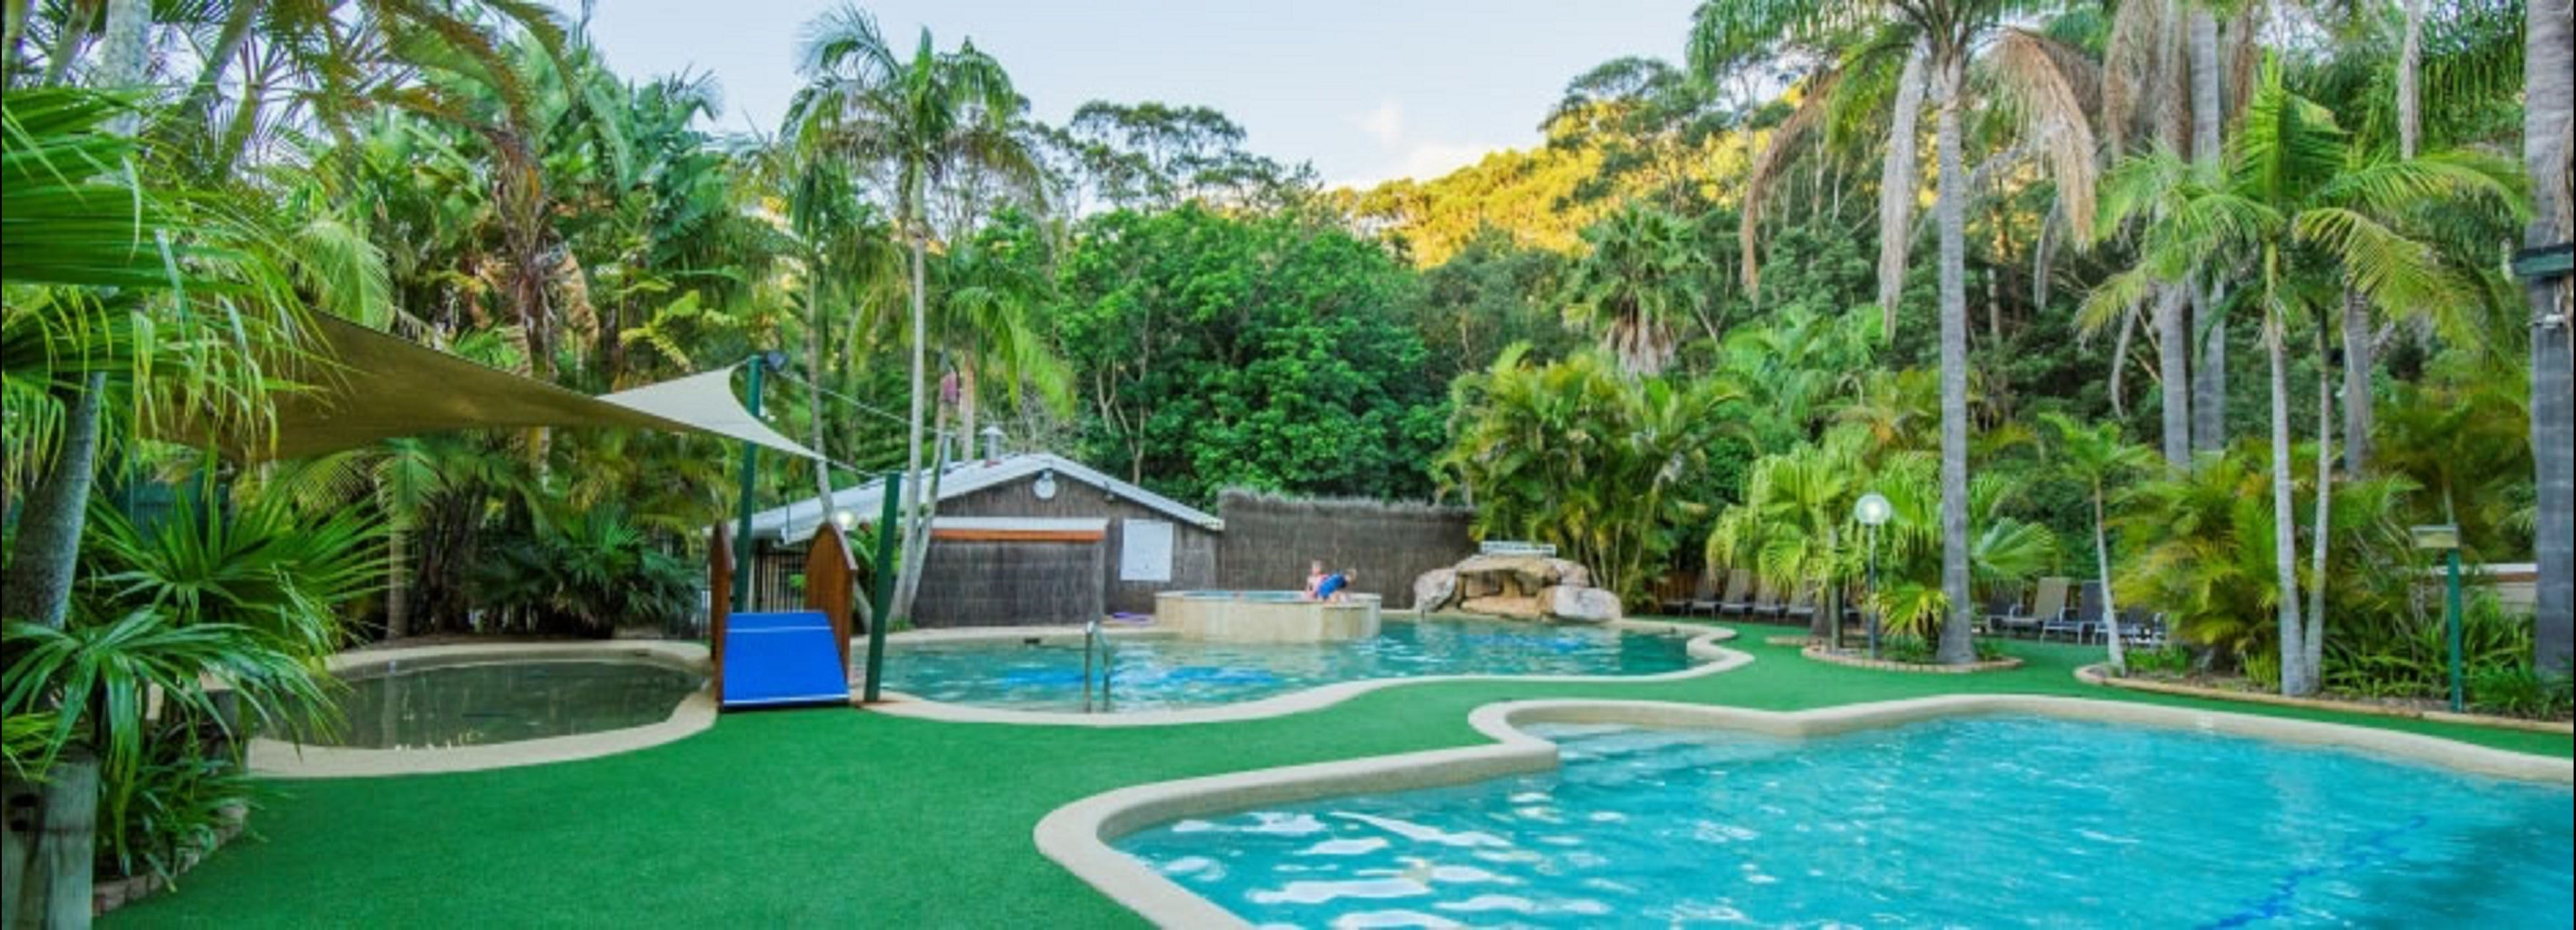 The Palms at Avoca - Accommodation Noosa